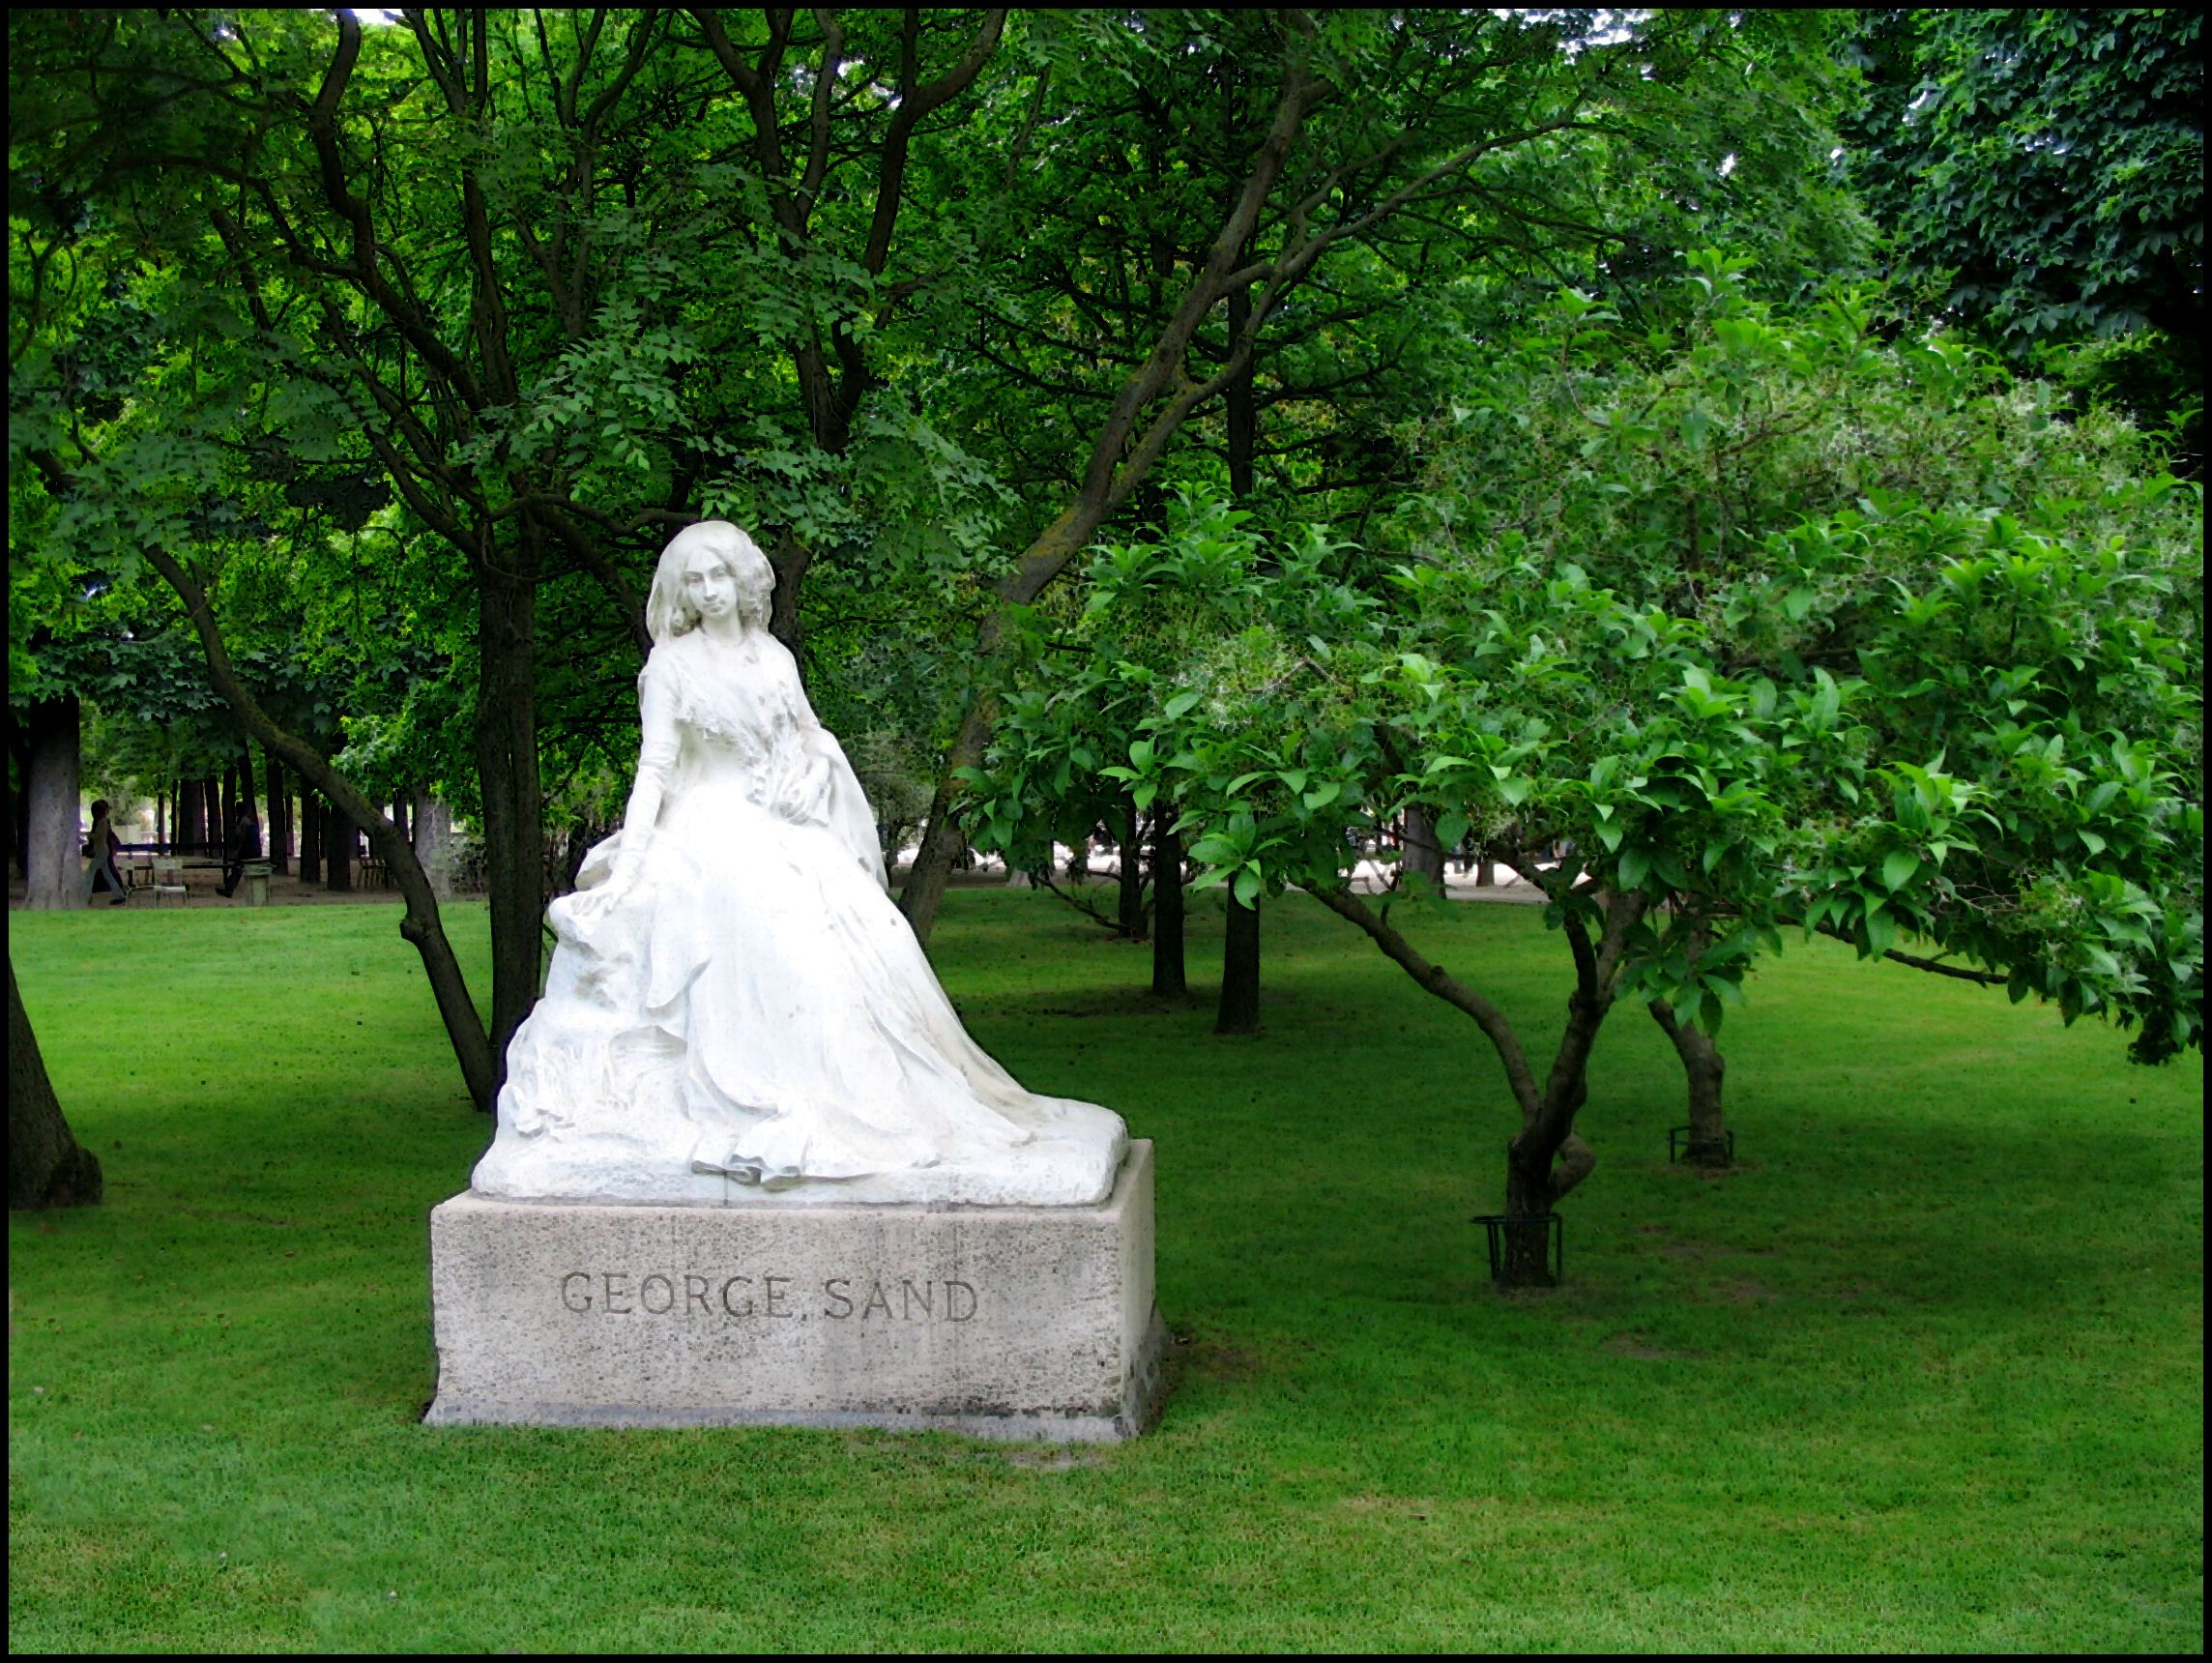 3989ed7cd54053d2303400160de7e396 - The Monument To Chopin In The Luxembourg Gardens